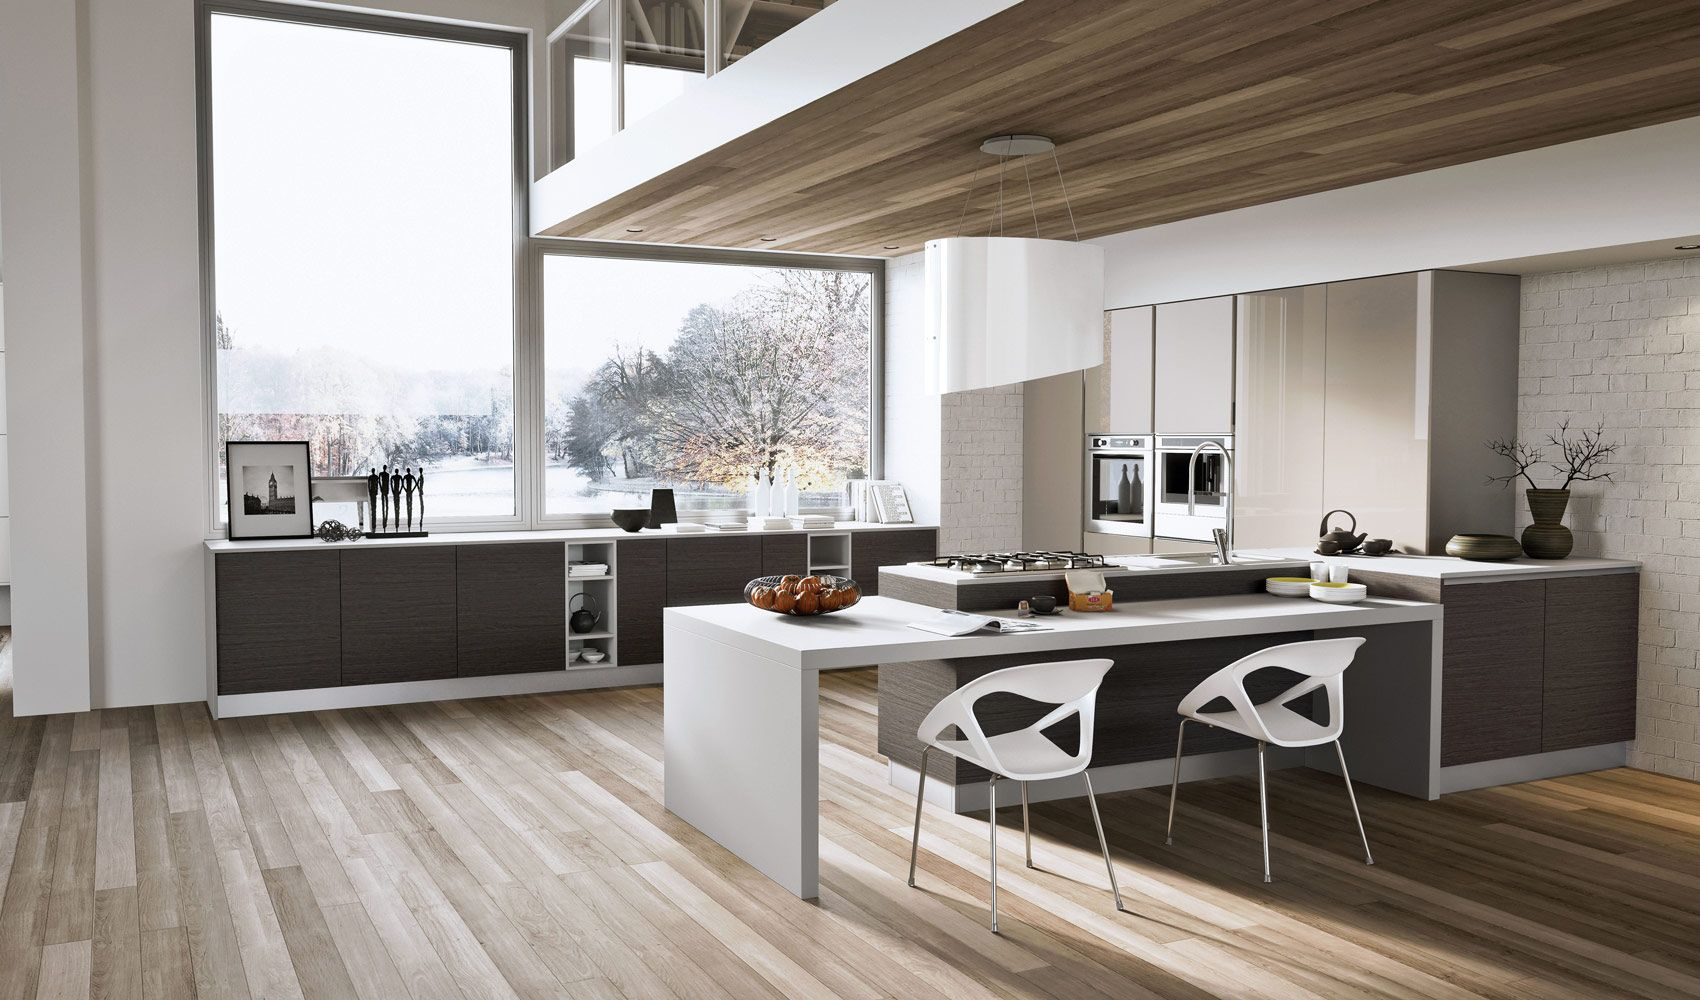 Small Modern Kitchen Units white and wood floors and modern grey kitchens - google search